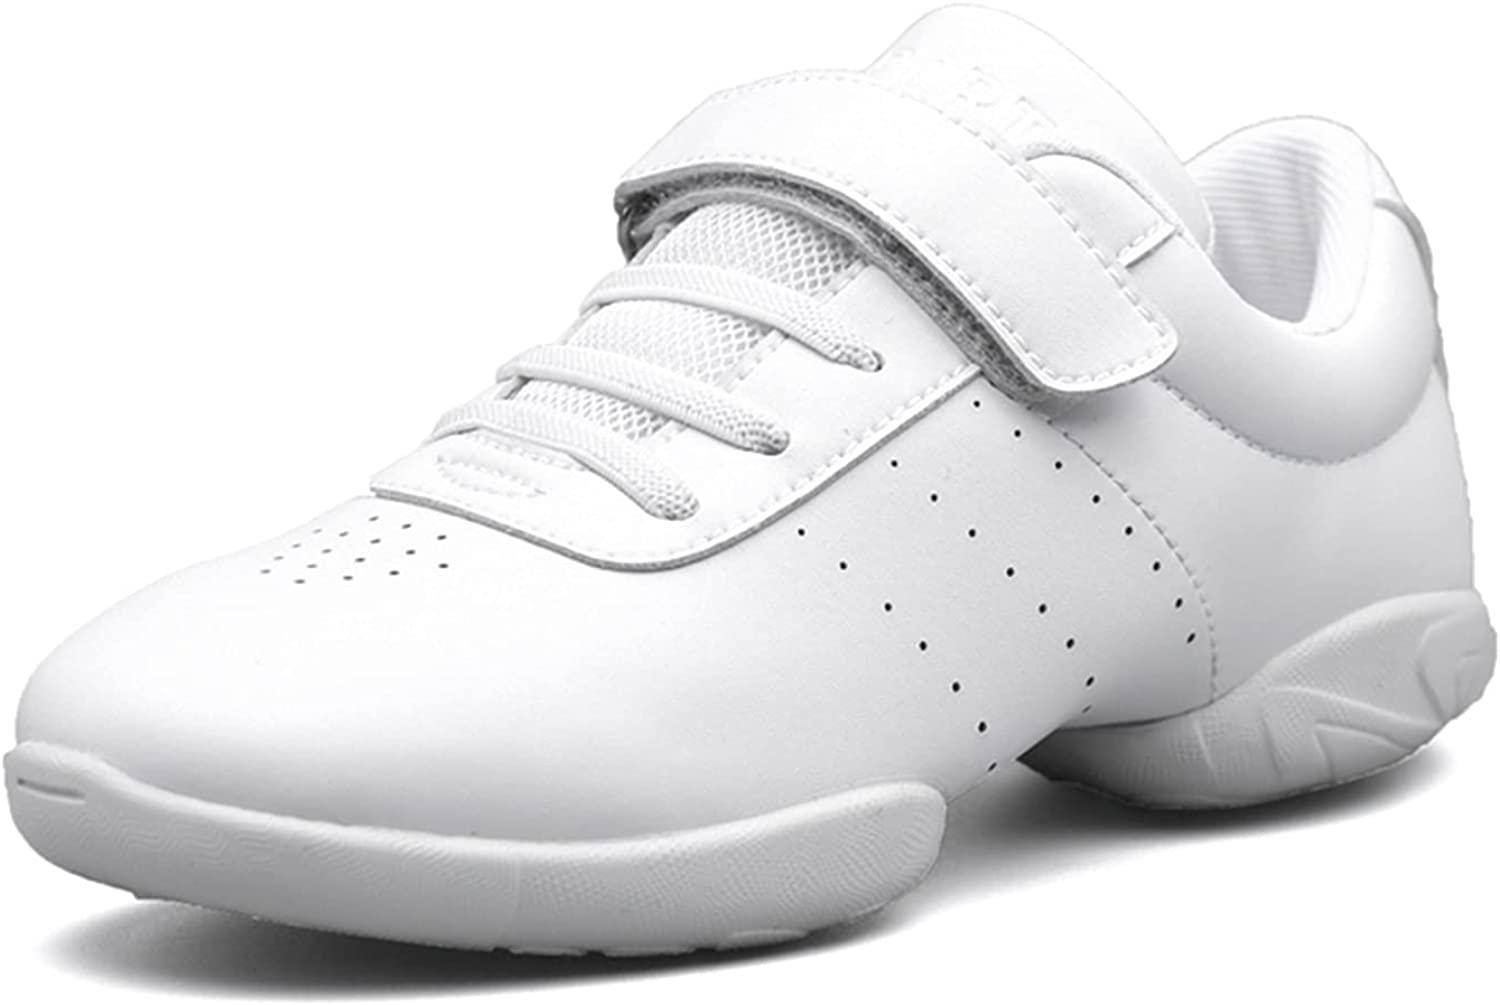 BAXINIER Girls White Cheerleading Dance Shoes Athletic Training Tennis Breathable Youth Competition Cheer Sneakers